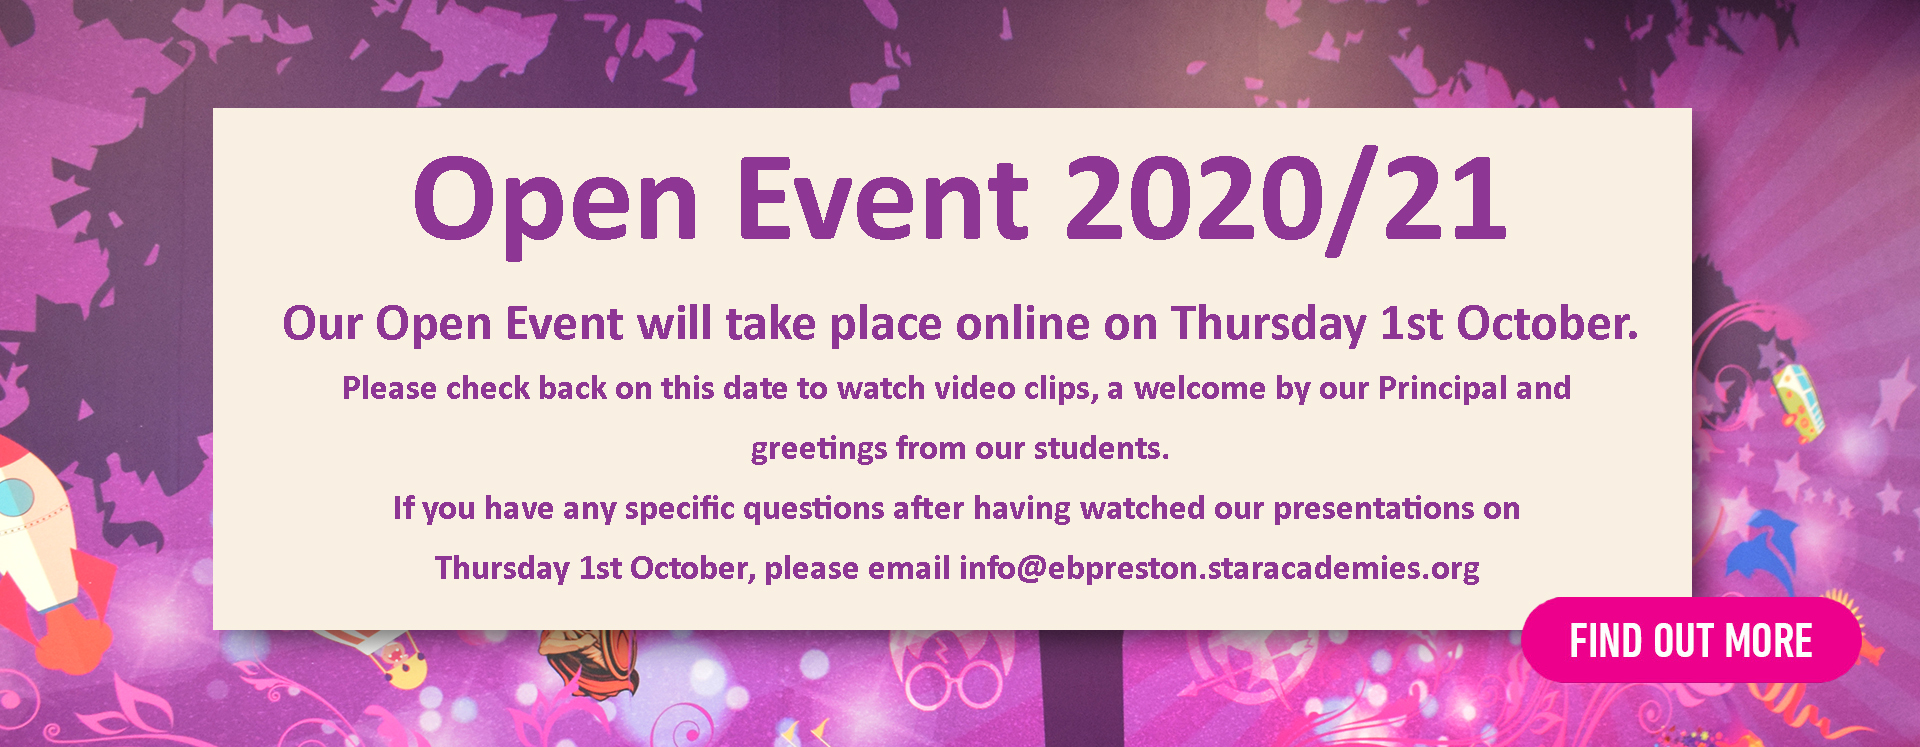 Open Event 2020